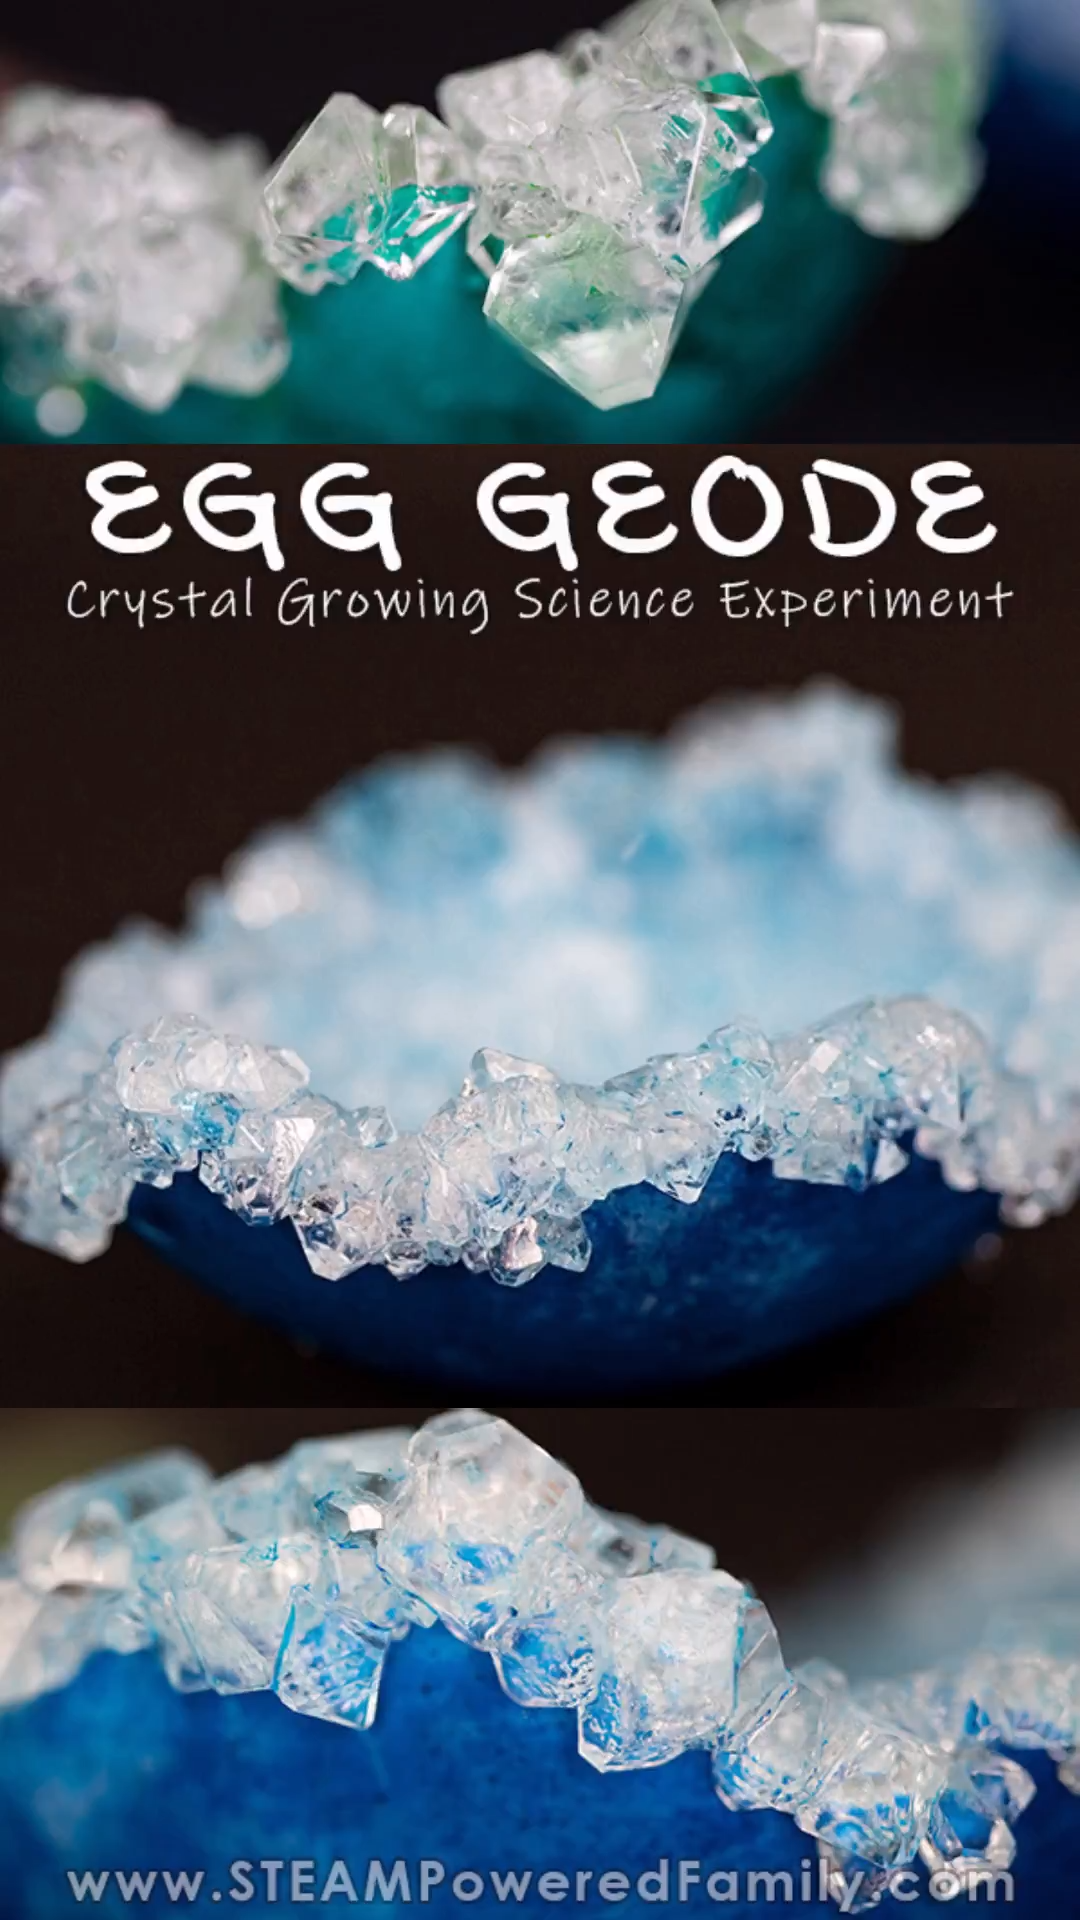 Growing Crystals To Create An Egg Geode Science Experiment